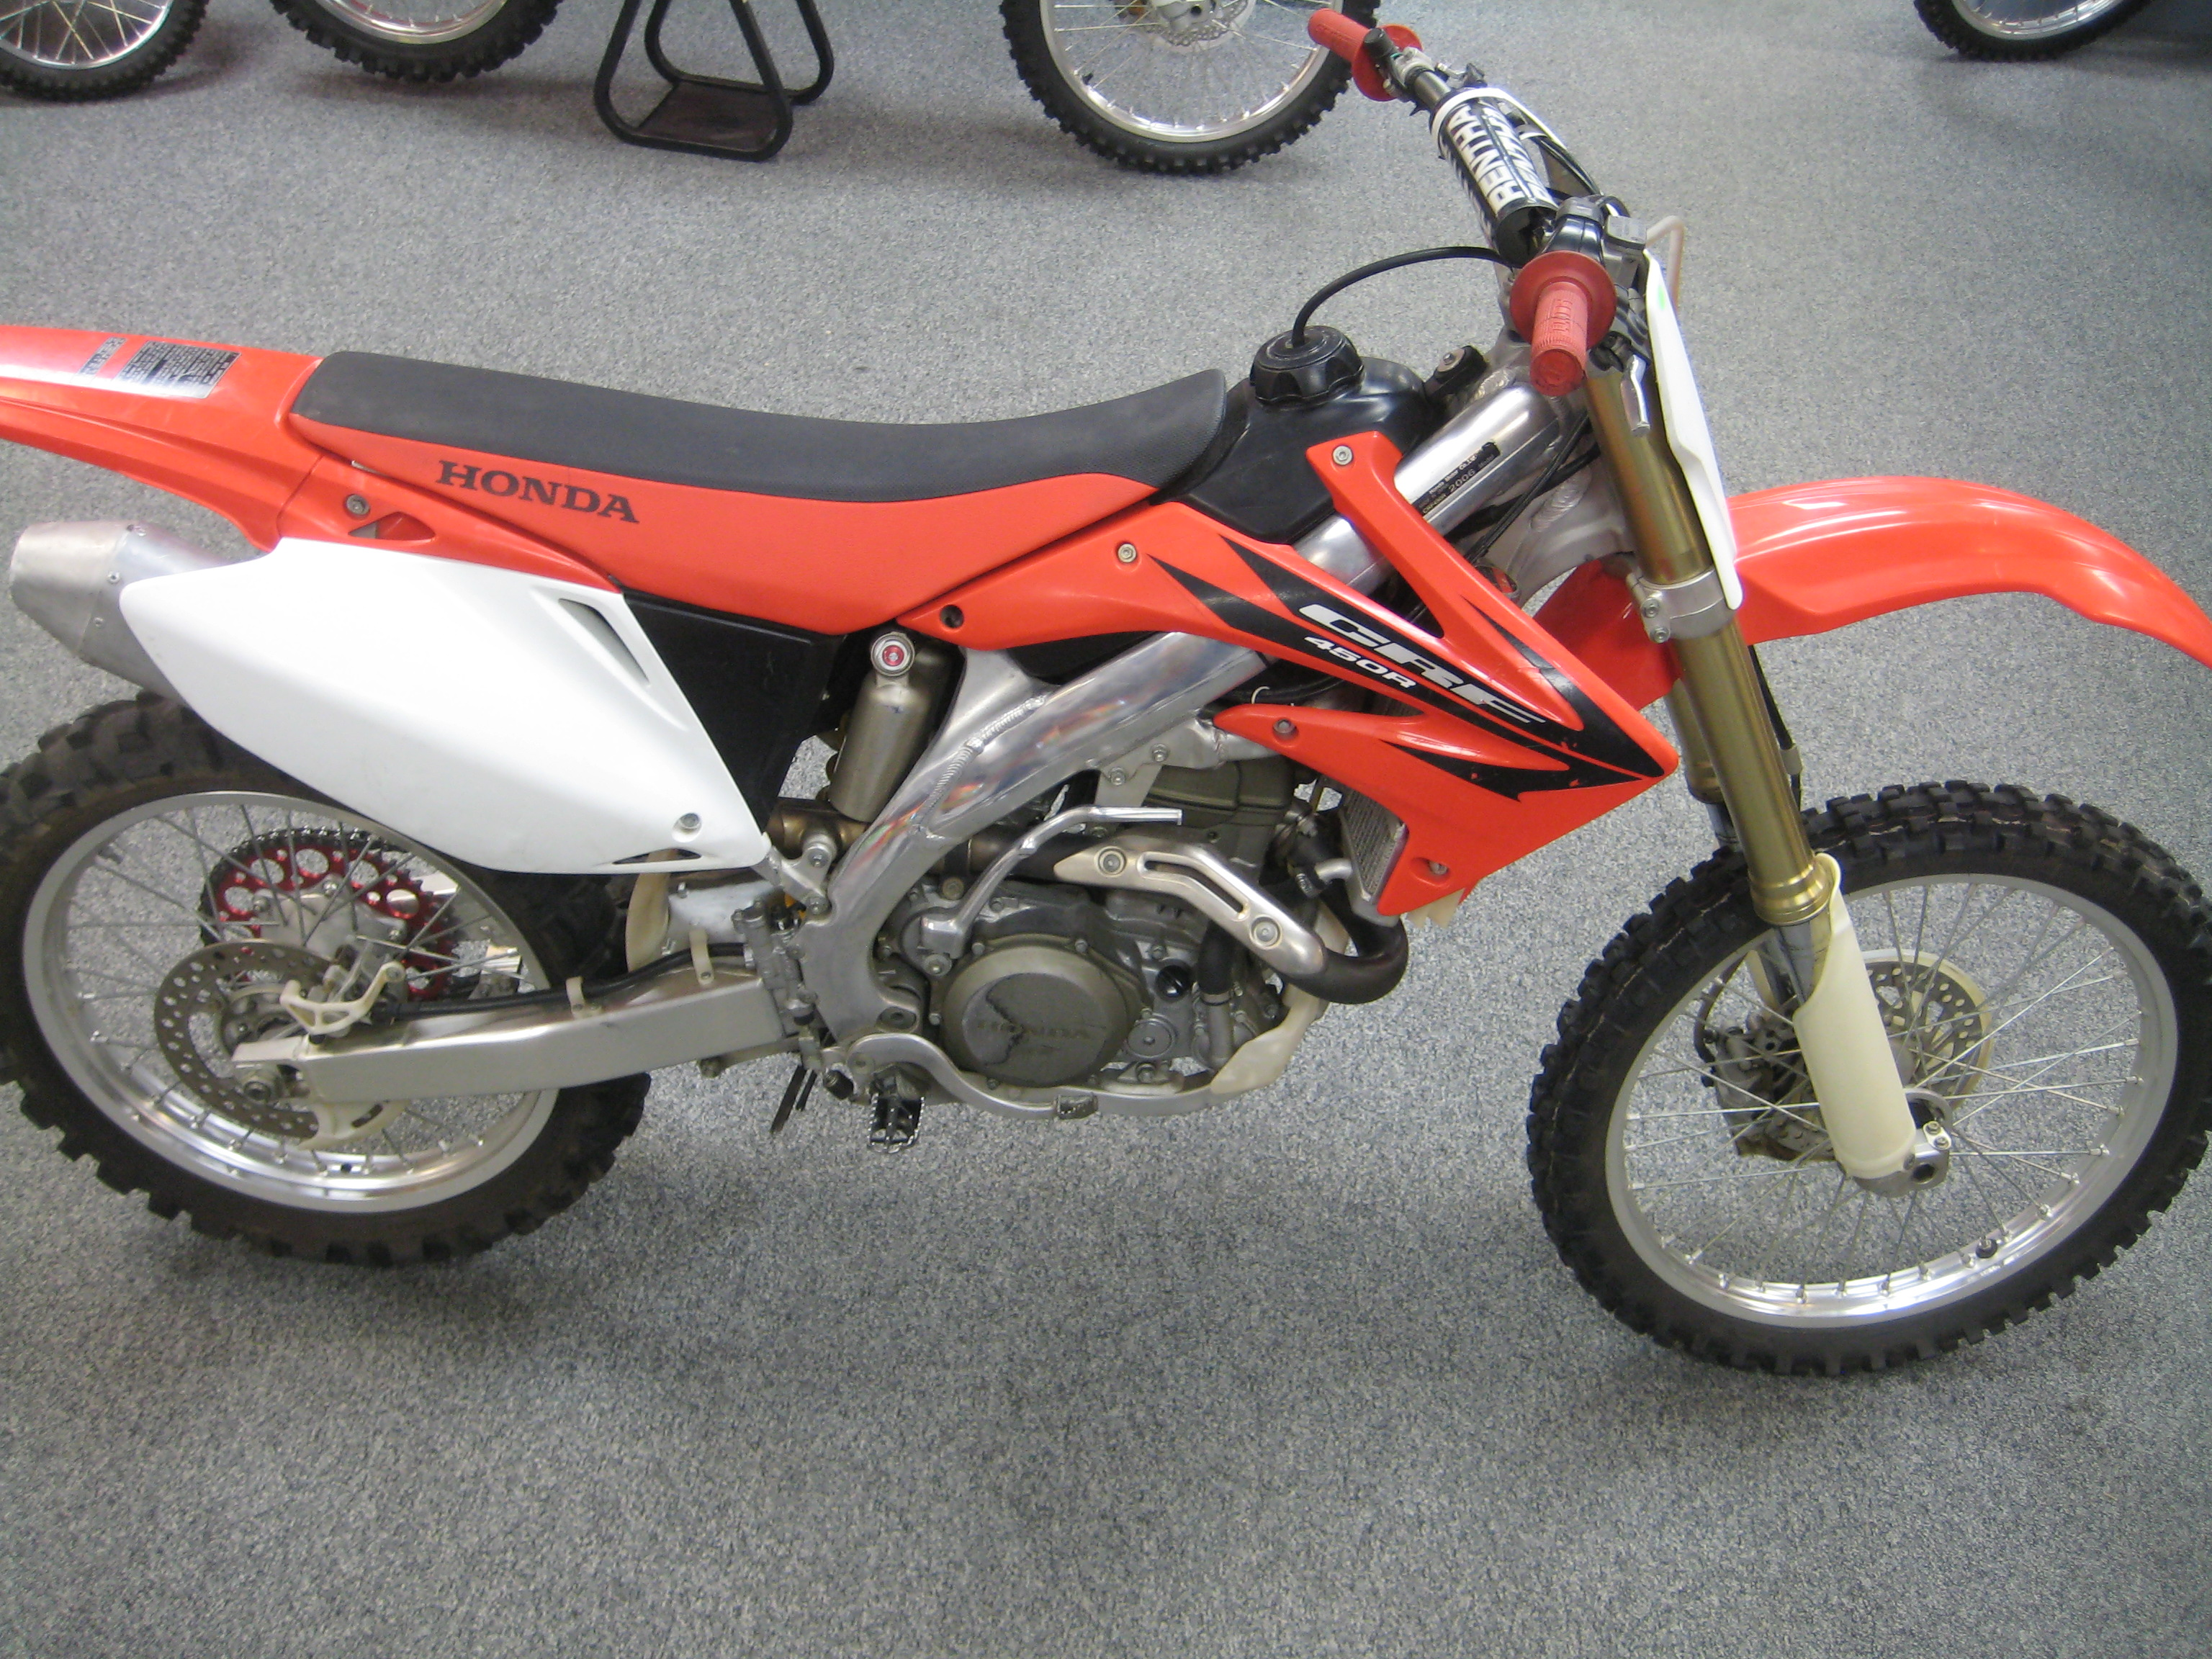 yamaha 250cc dirt bike 4 stroke. Black Bedroom Furniture Sets. Home Design Ideas